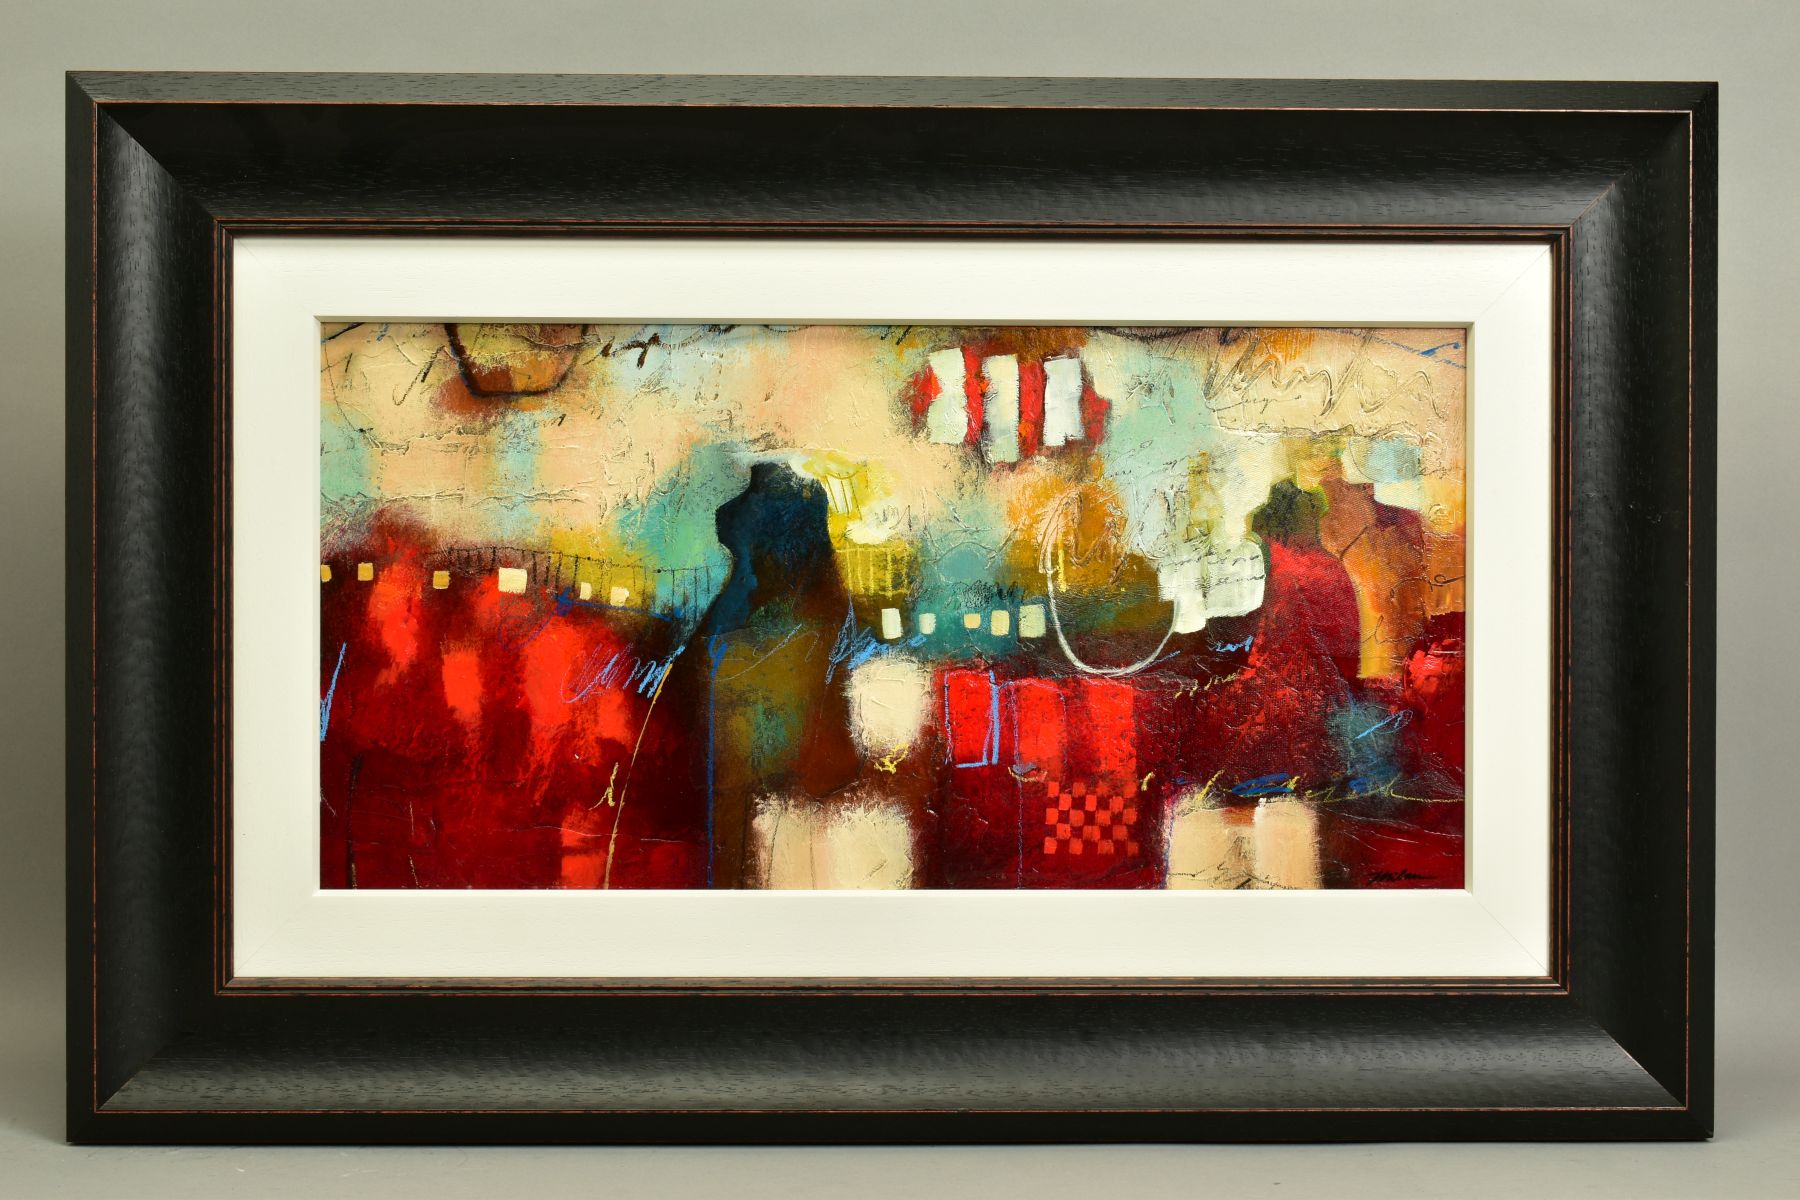 JOHN AND ELLI MILAN (AMERICAN CONTEMPORARY), 'Red Montage', a colourful abstract from the husband